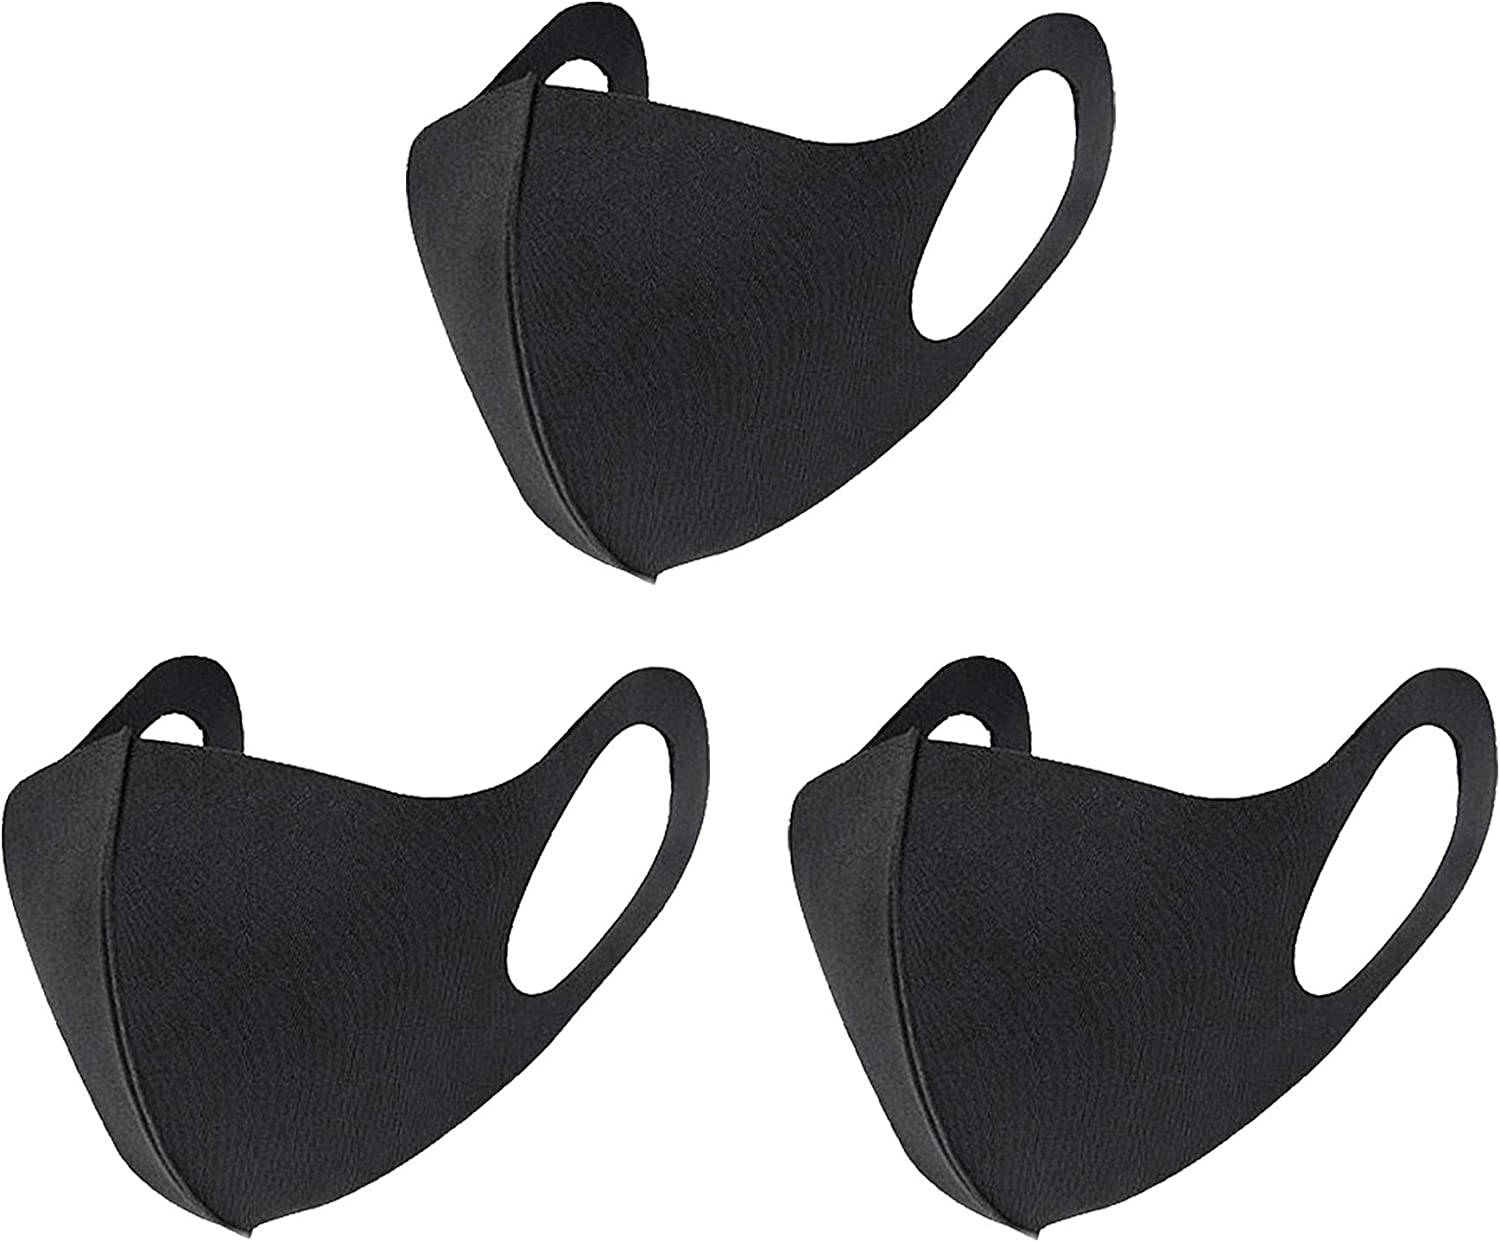 LAPCOS Reusable Face Mask Washable and Reusable Protective